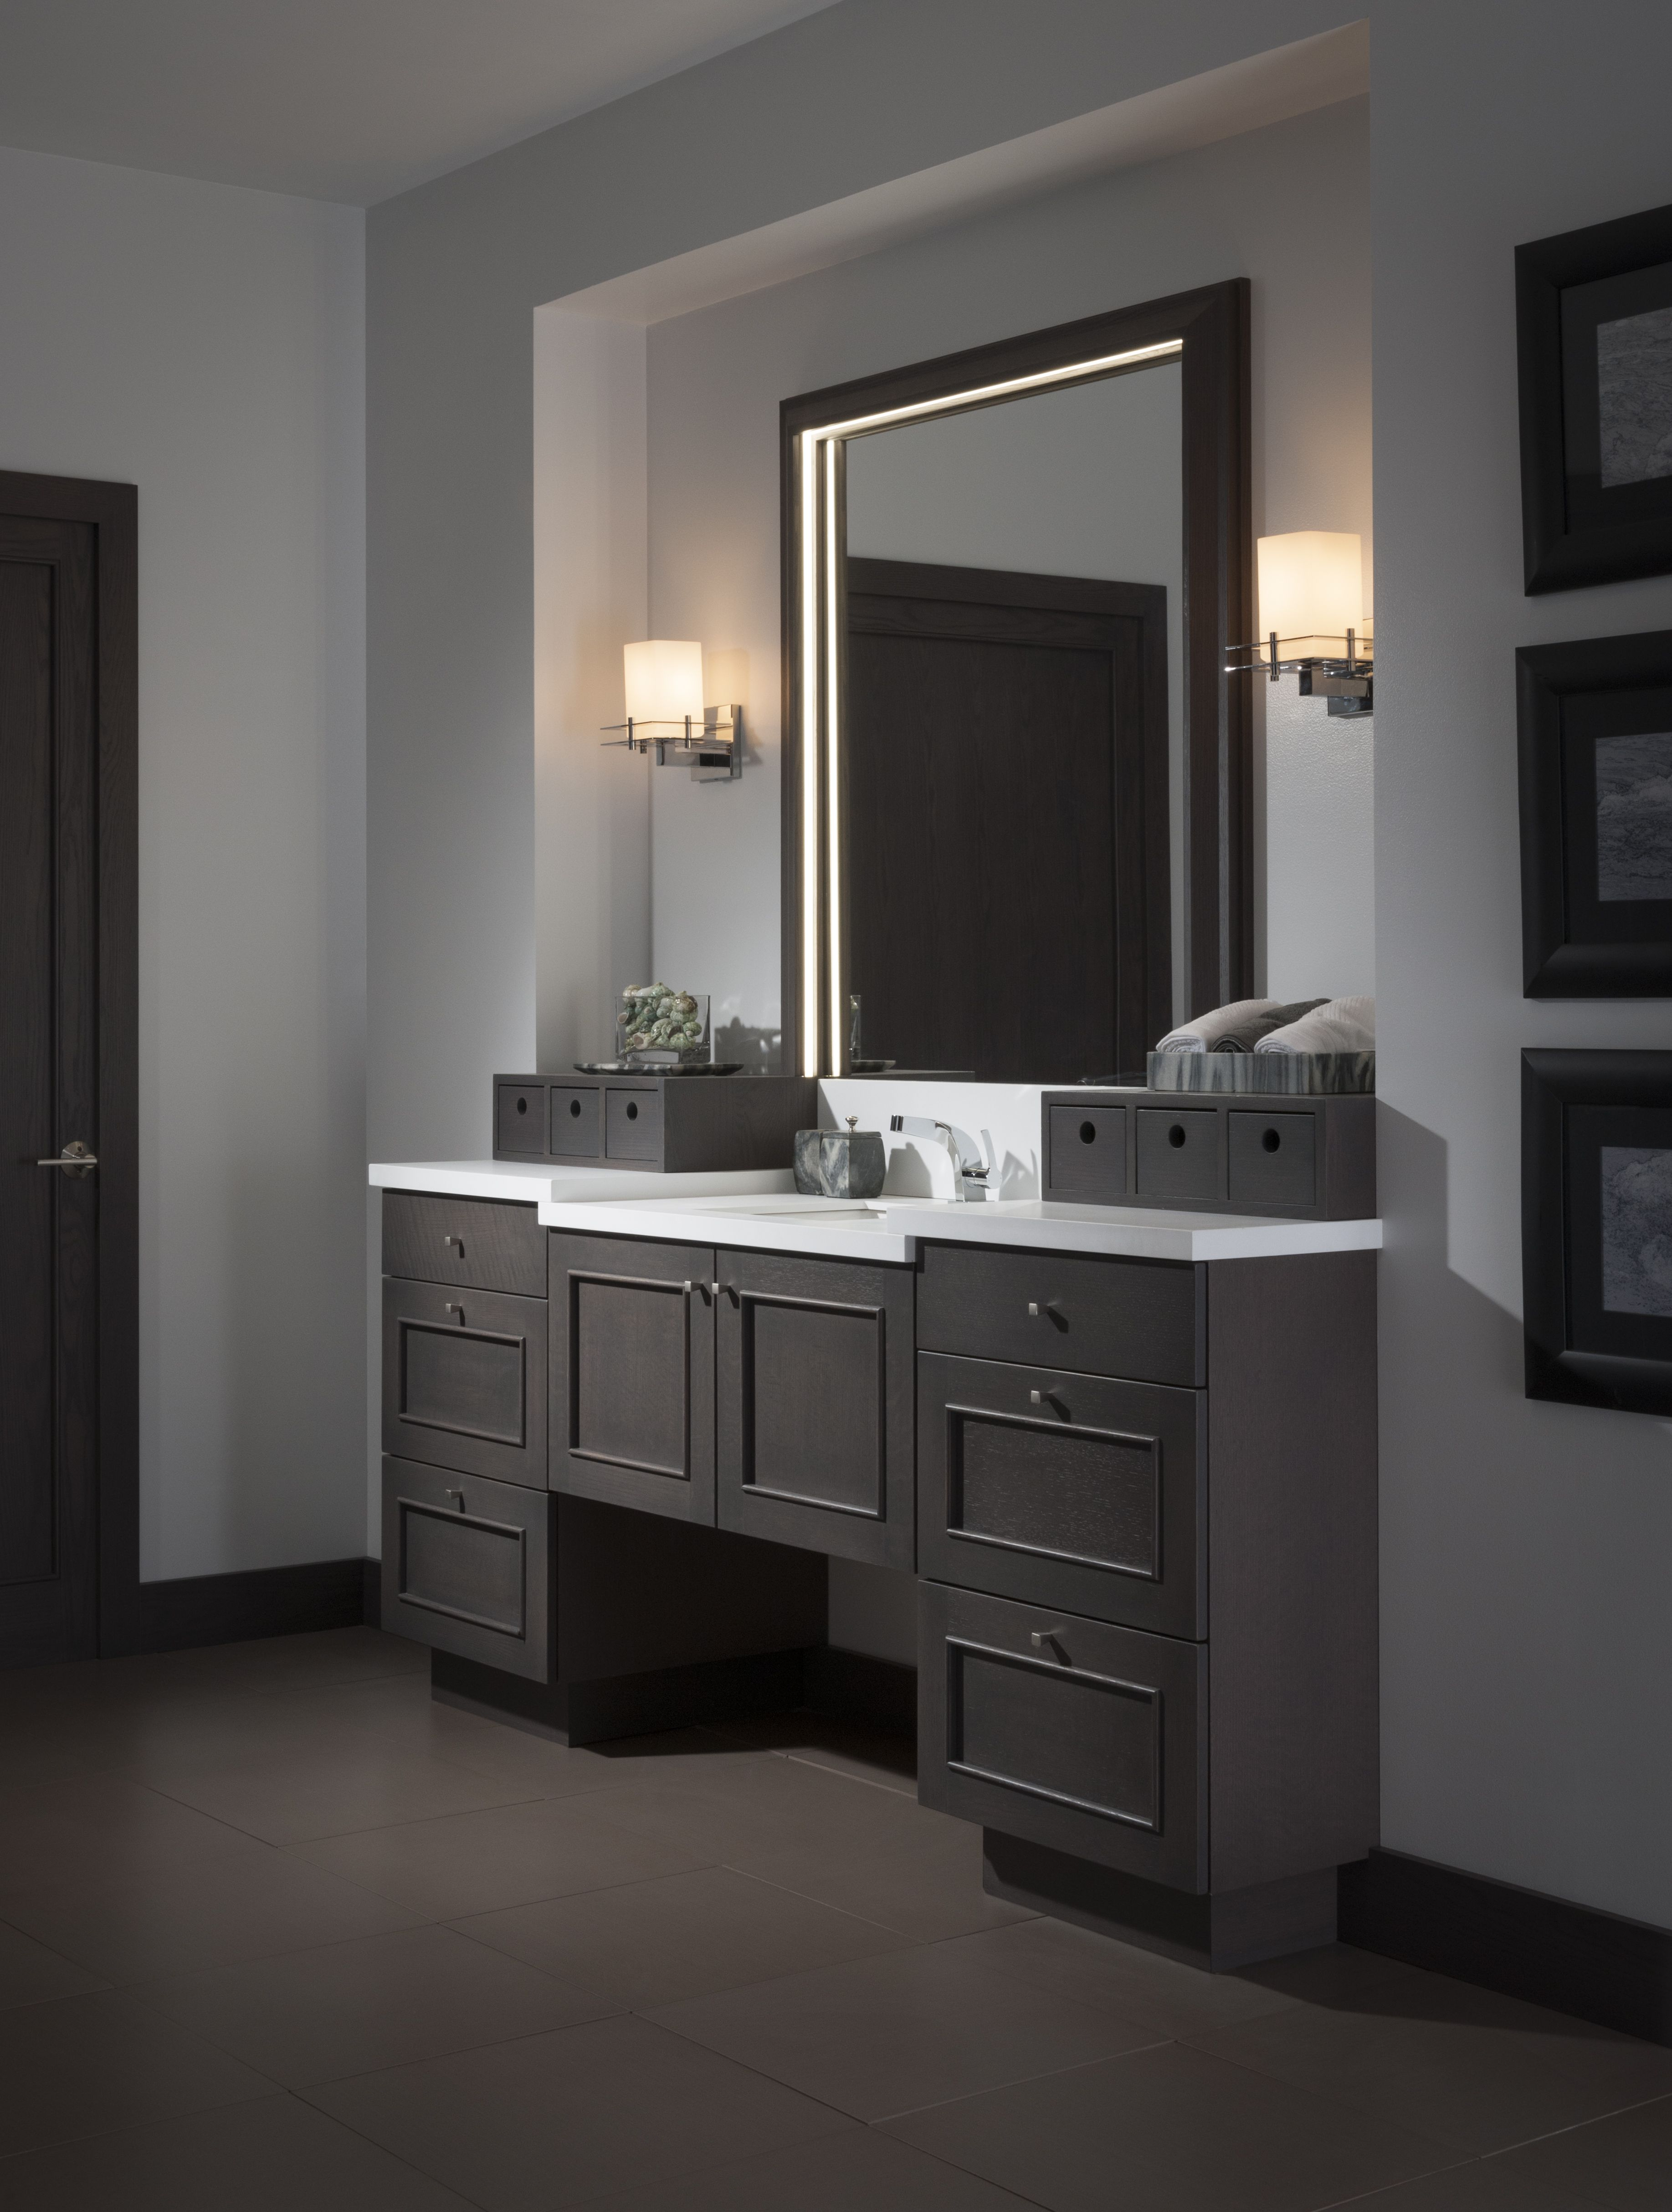 A Study In Contrast The Contemporary Soho Bath By Wood Mode Features A Dark Twilight Finish On Quarter Custom Kitchen Cabinets Design Wood Mode Cabinet Design